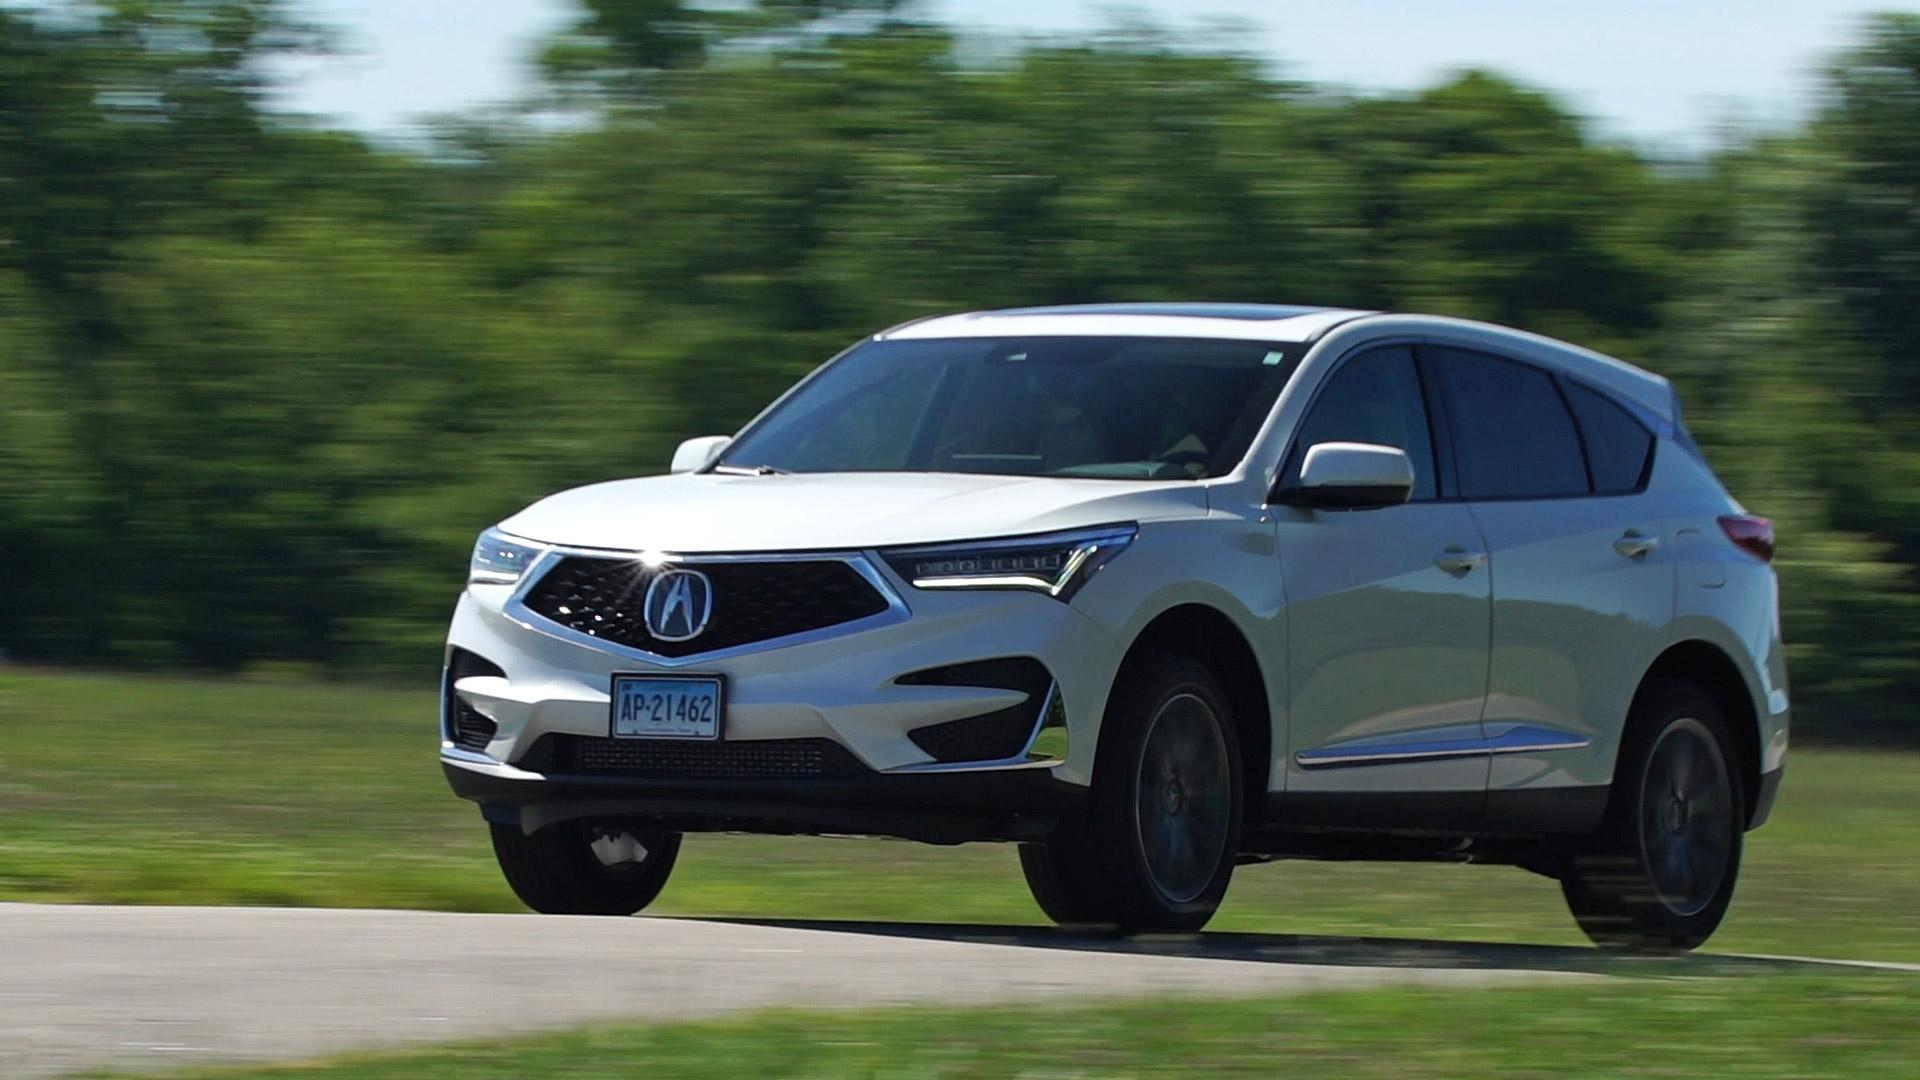 all new 2019 acura rdx shines with peppy engine improved ride and handling [ 1920 x 1080 Pixel ]